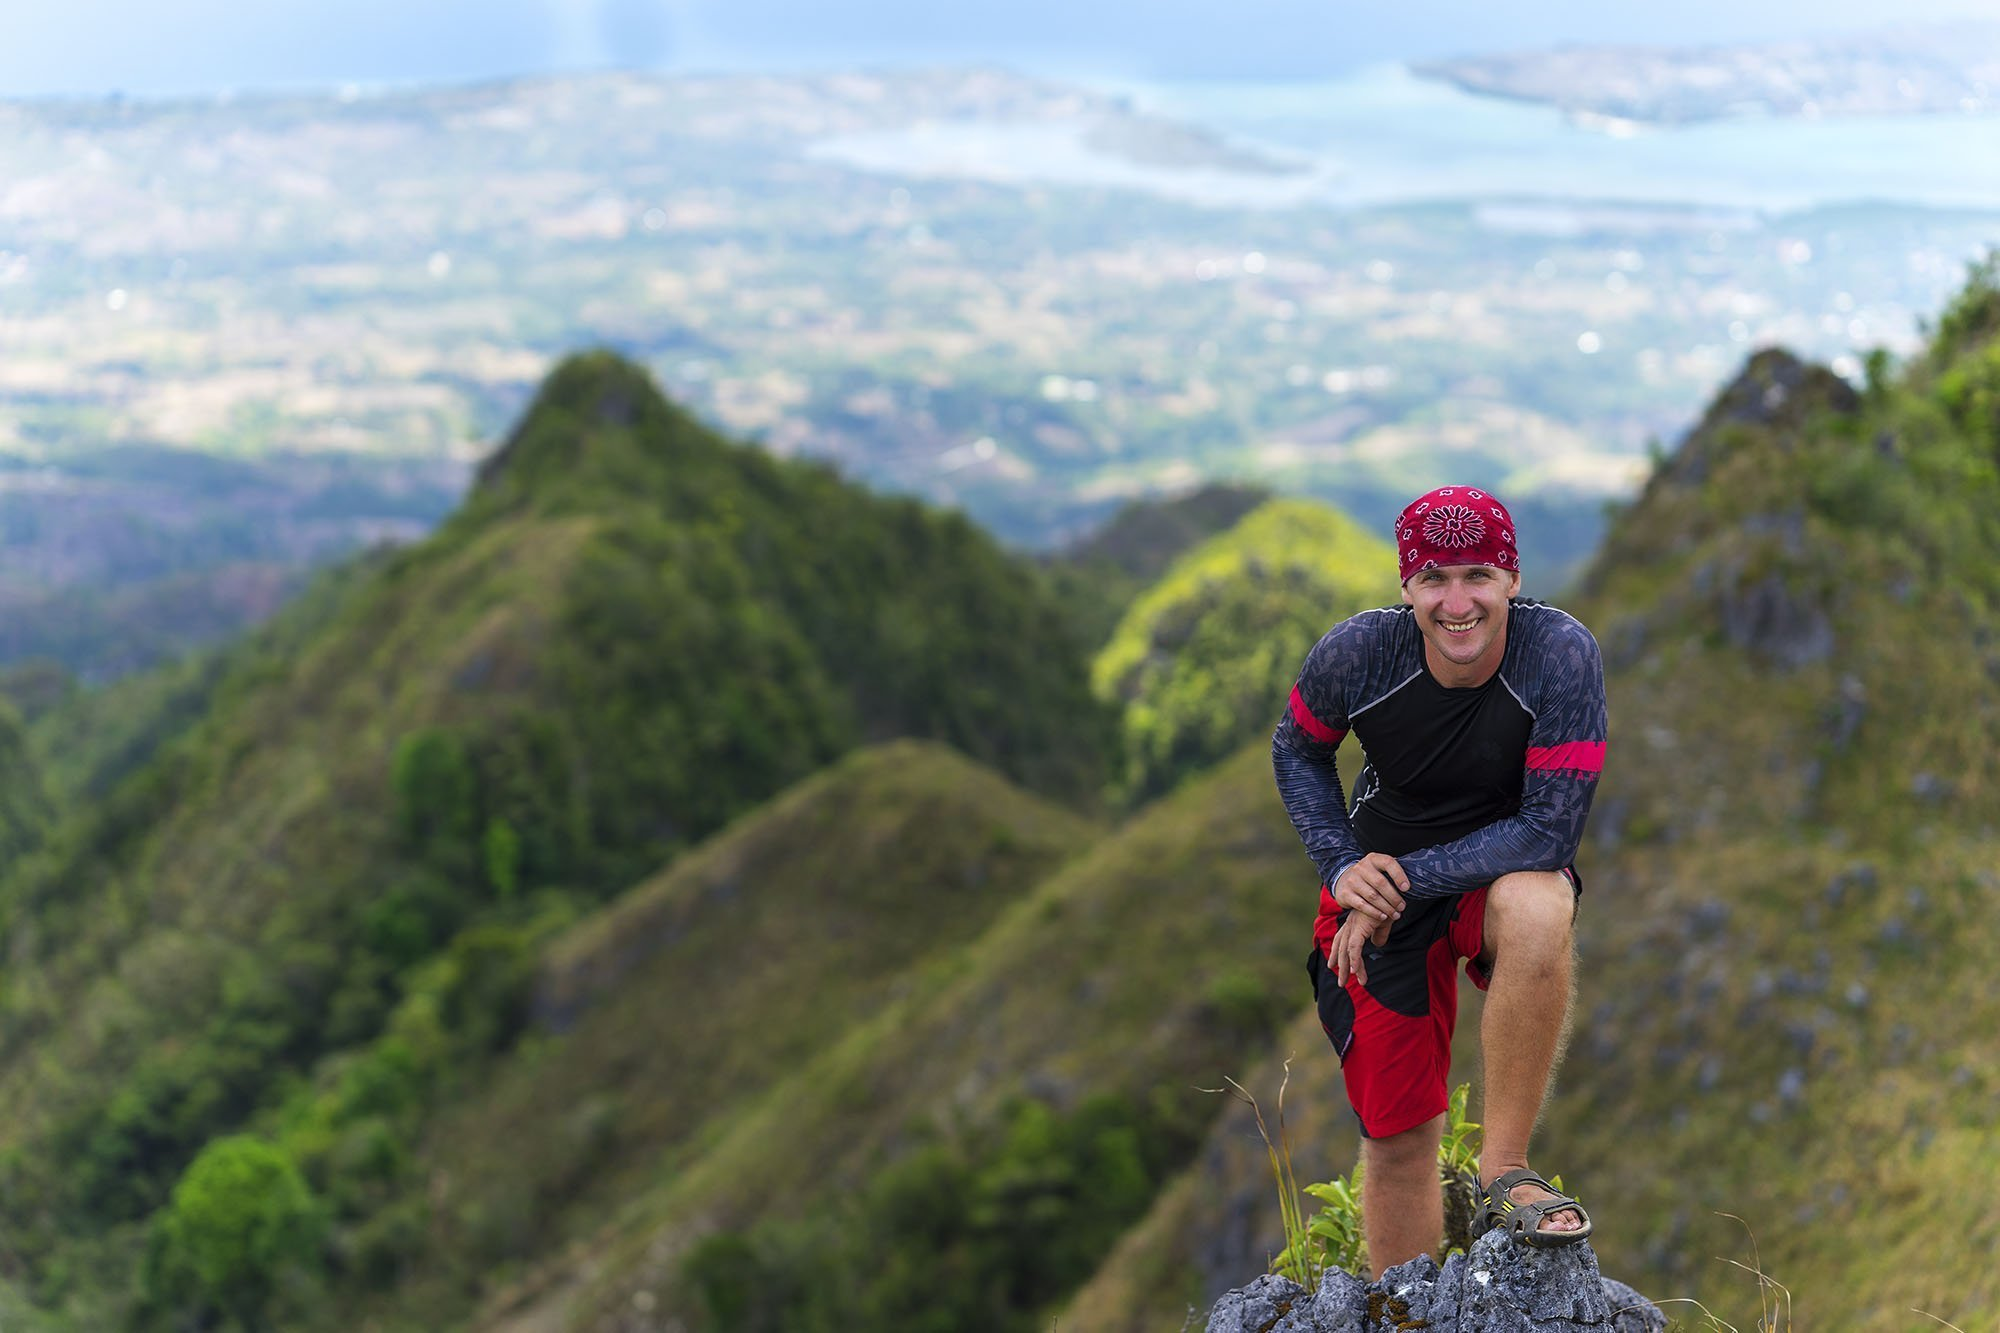 Climb Up! Here Are the 7 Best Hiking Sites in the  Visayas